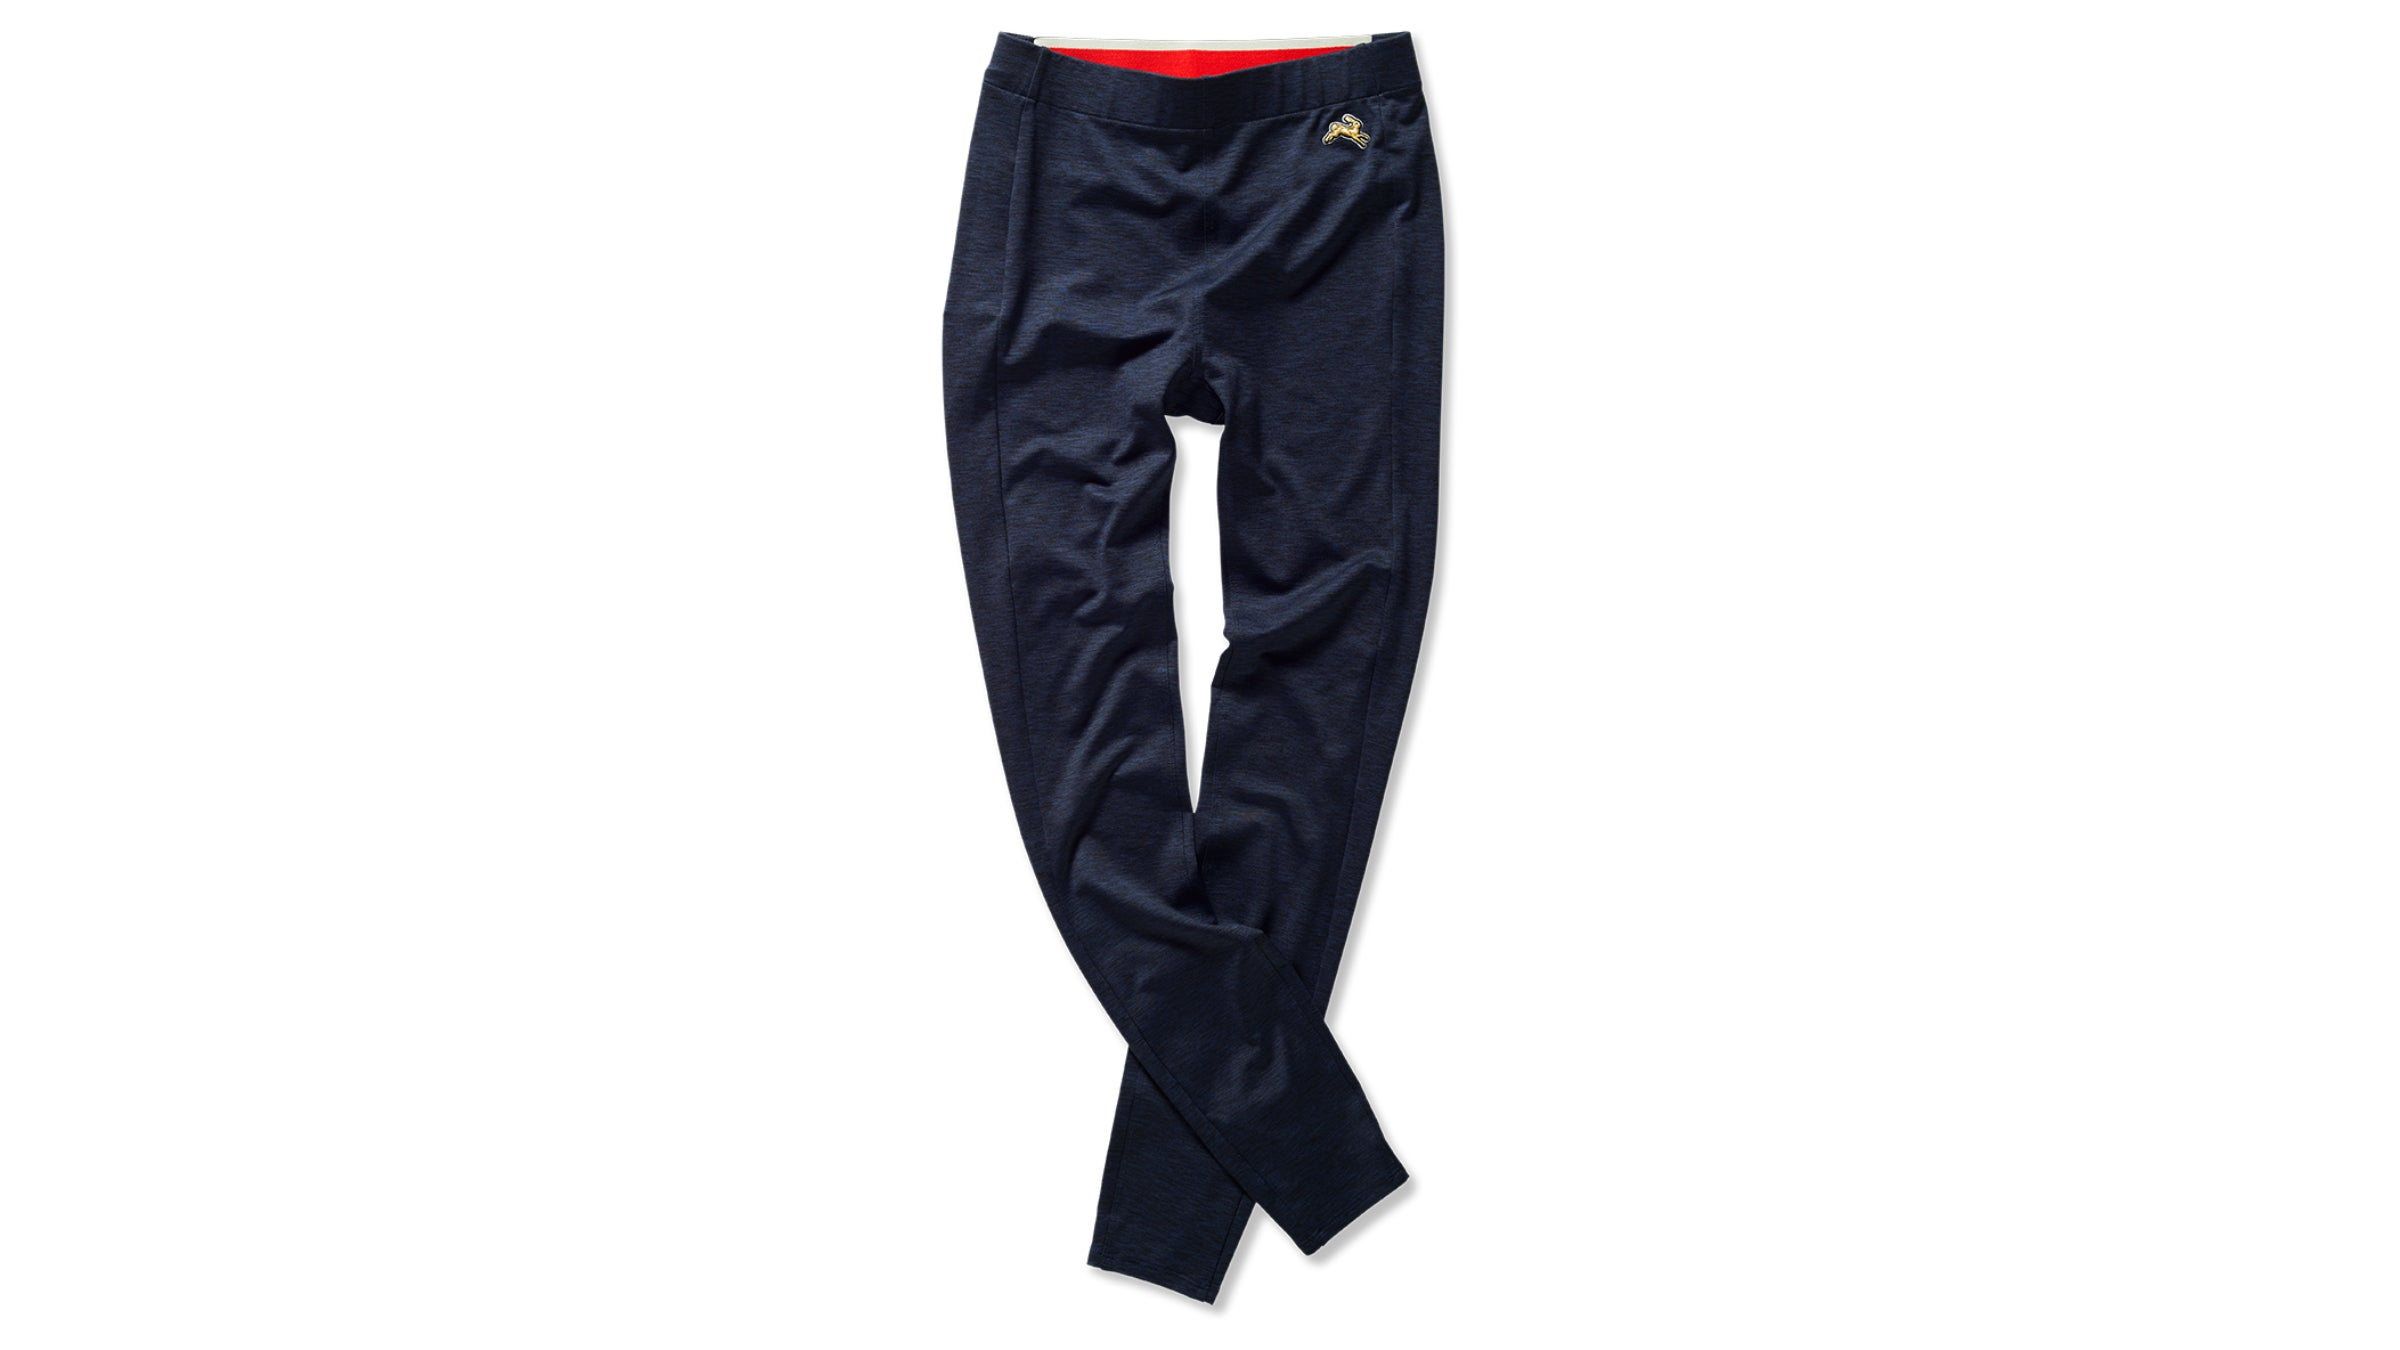 Navy Blue running tights